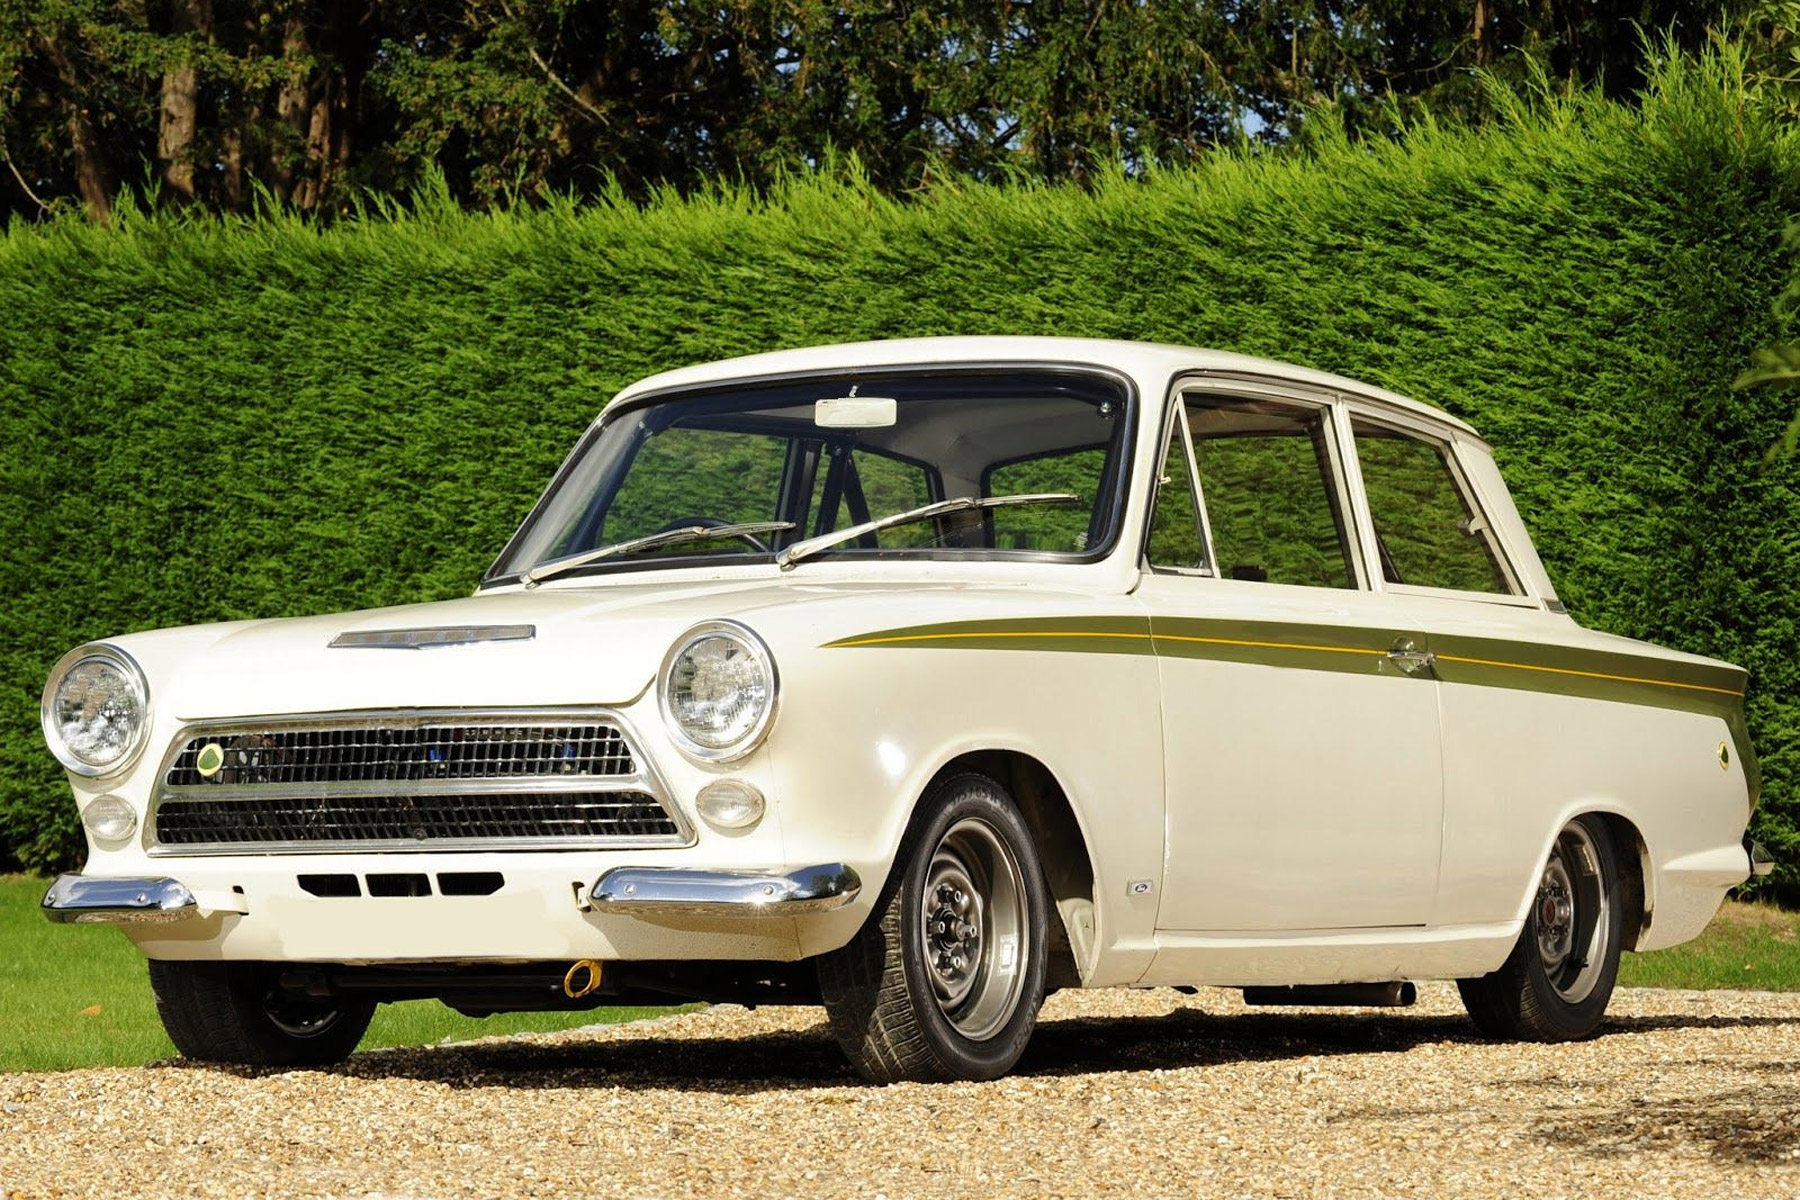 7: Bruce Reynolds' Lotus Cortina